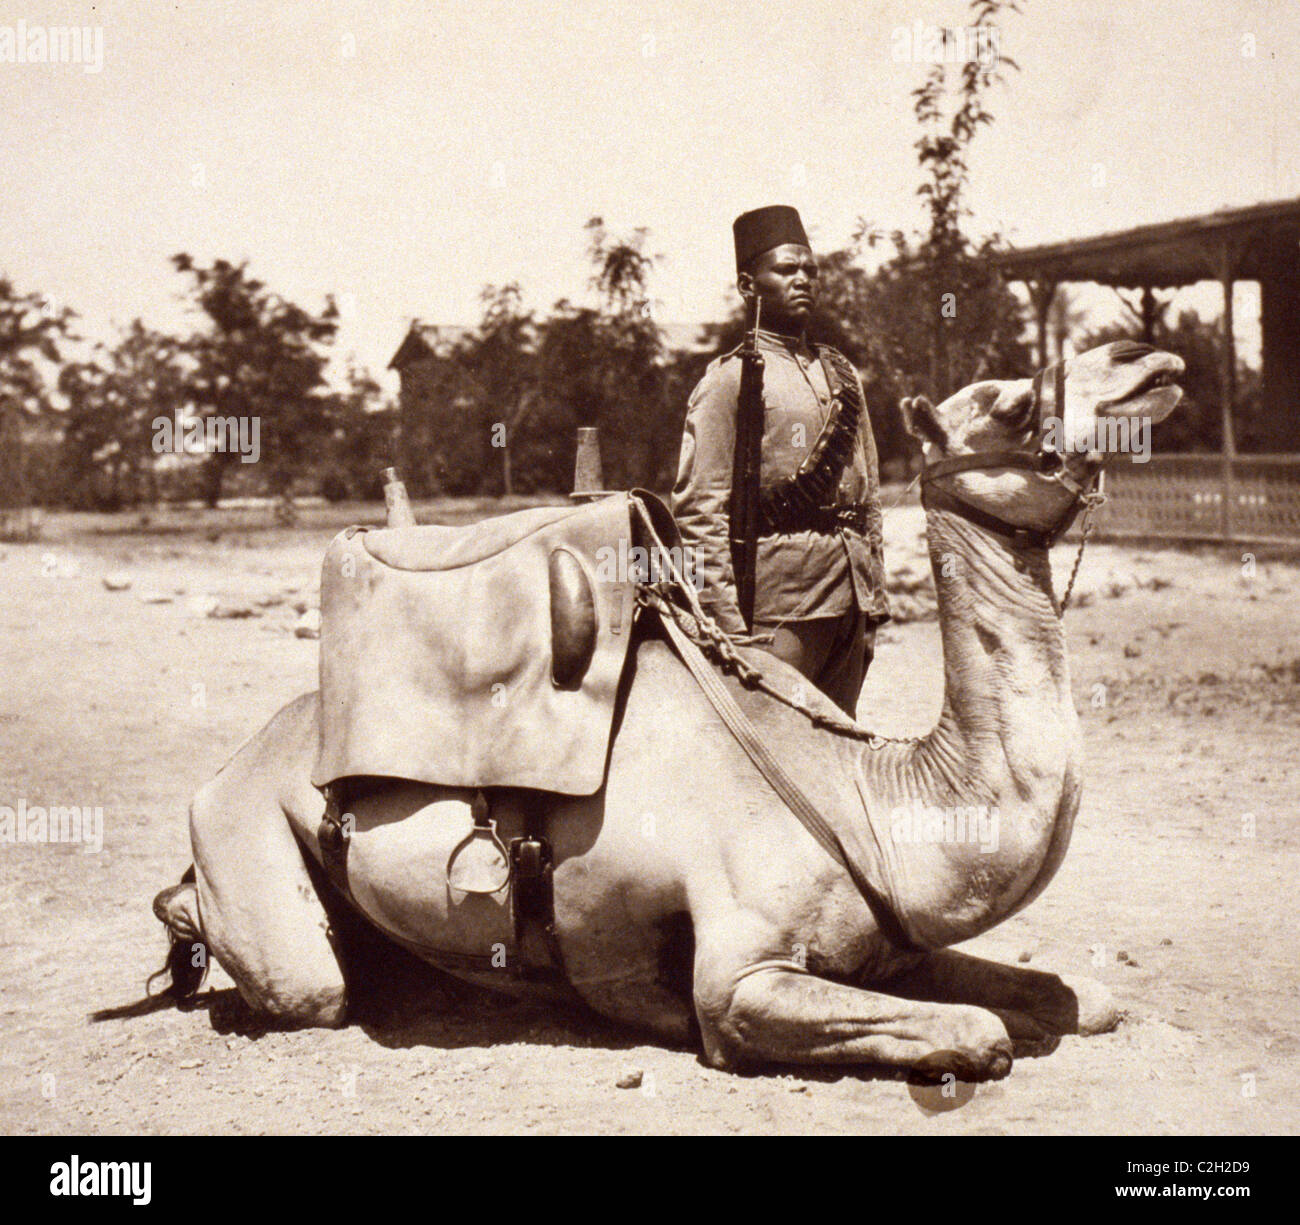 Anglo-Egyptian Sudan - camel soldier of the native forces of the British army - Stock Image